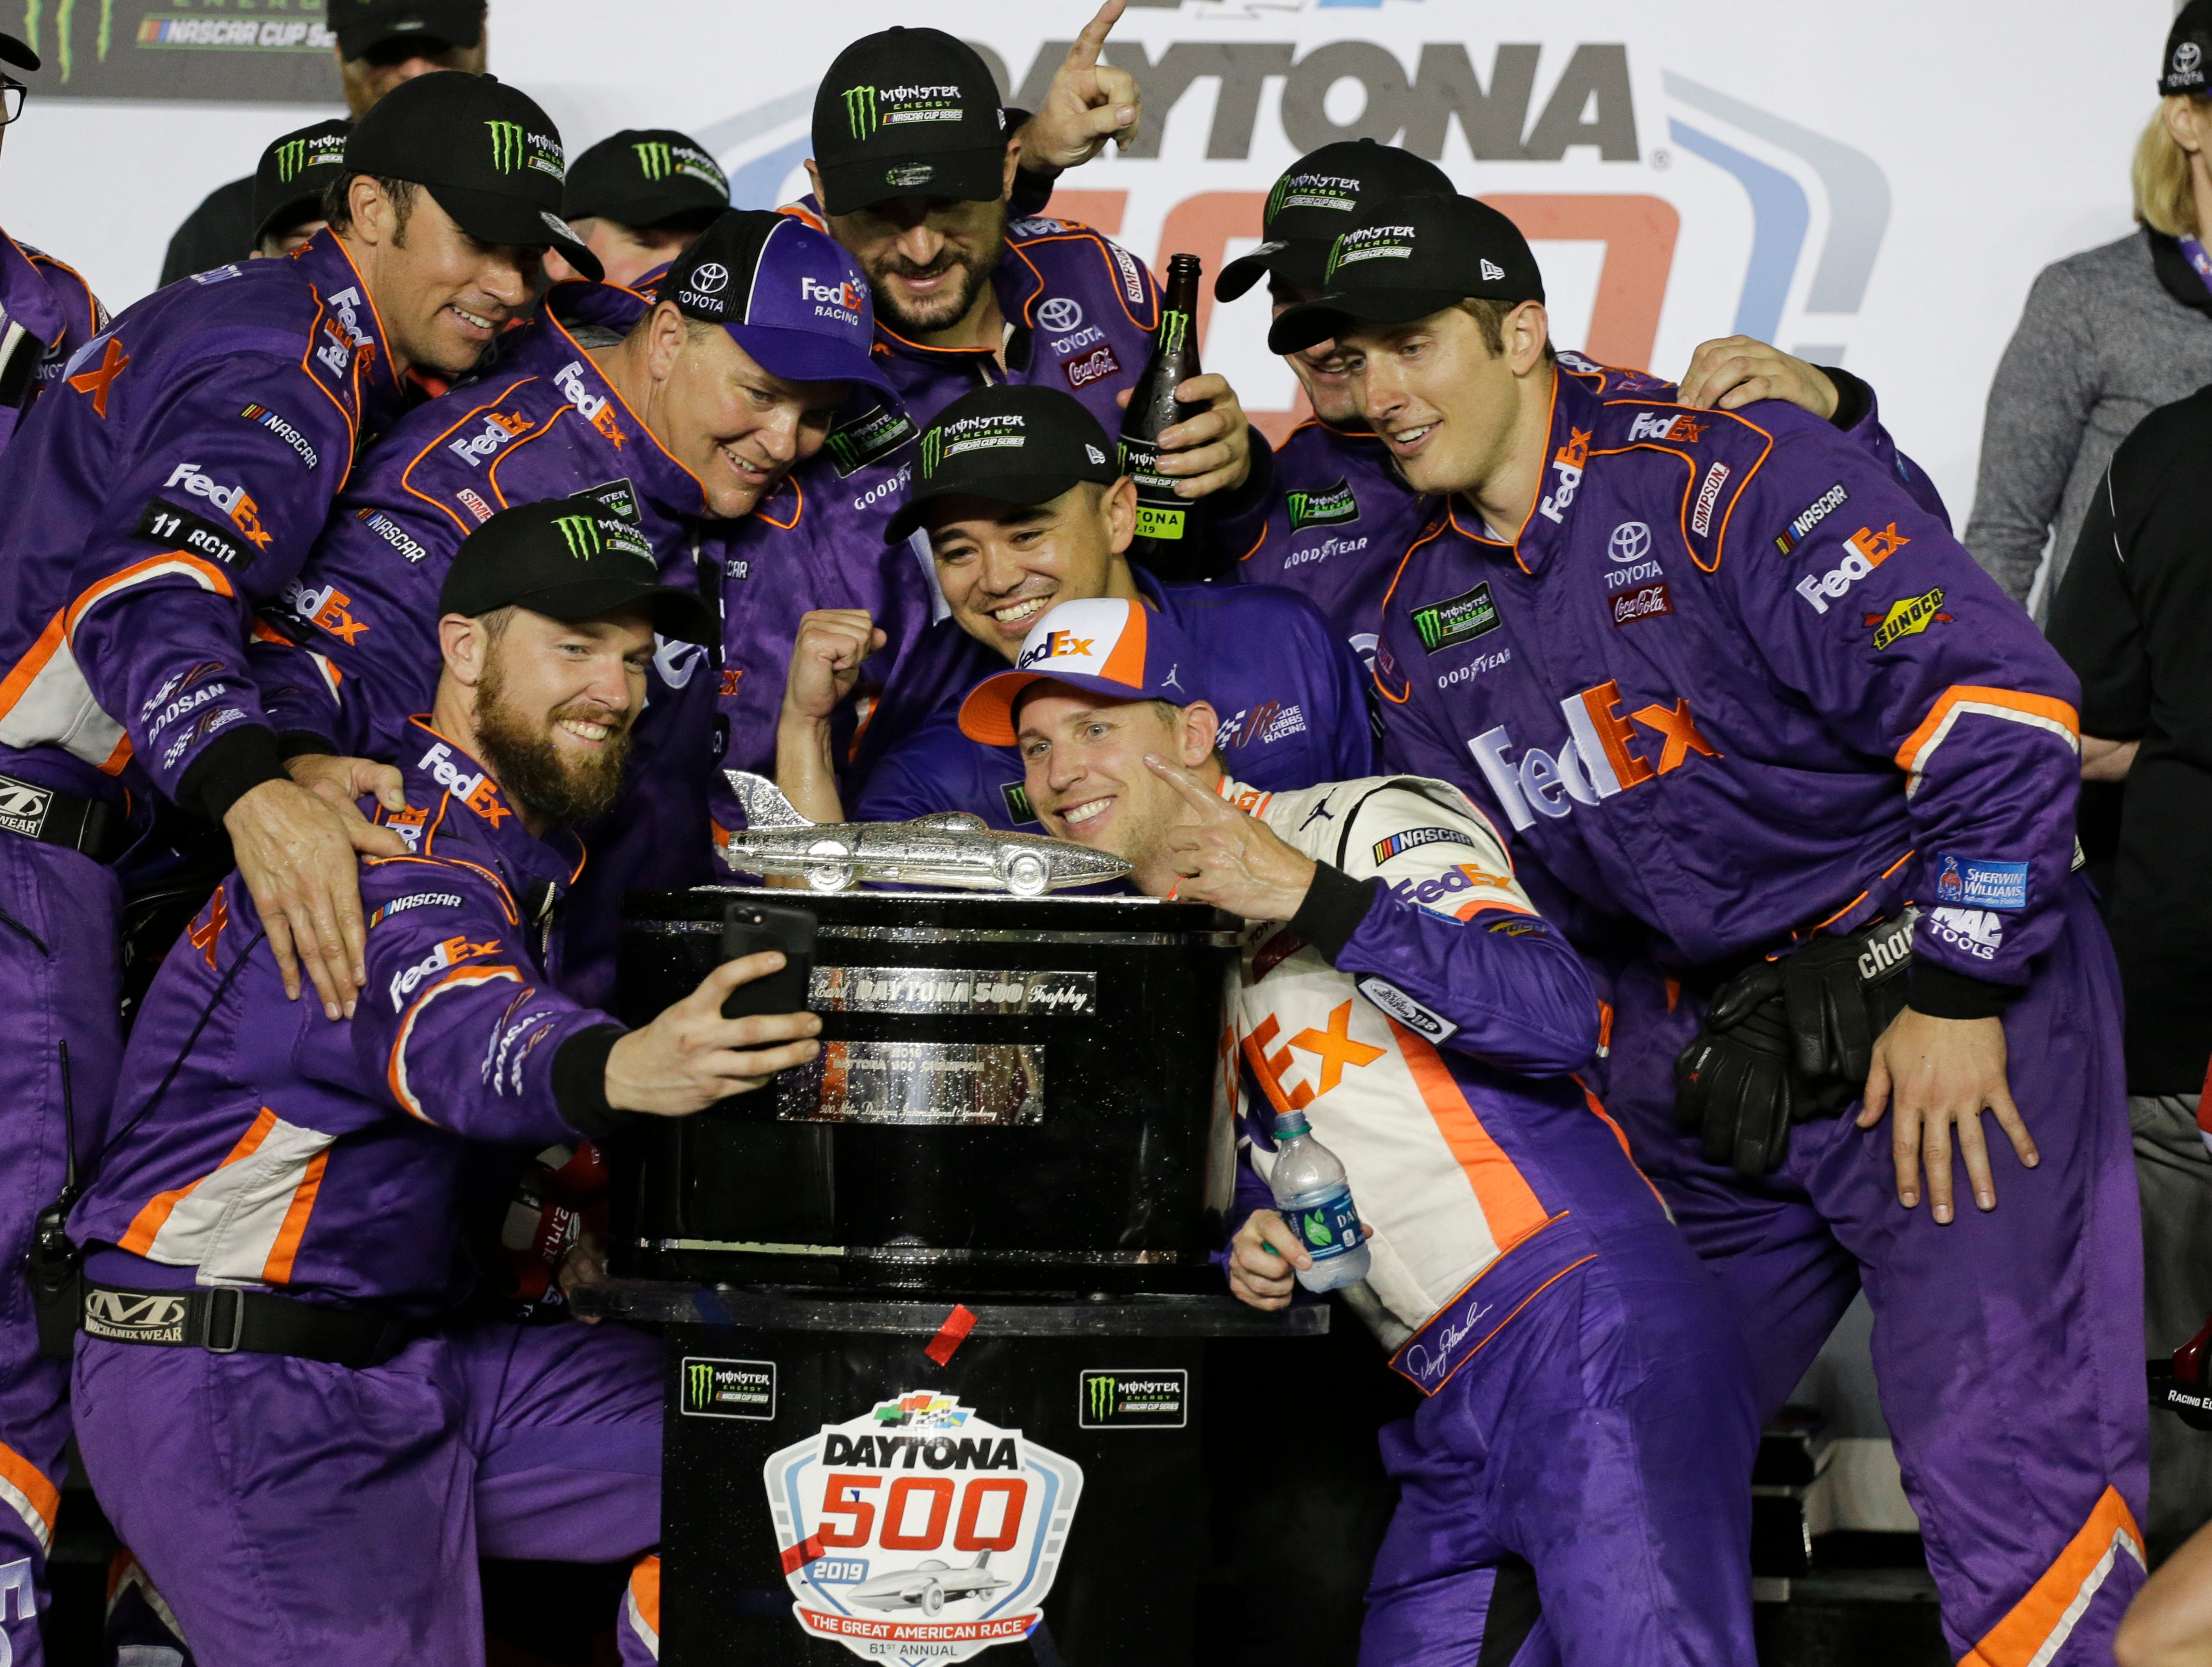 Denny Hamlin, center front, poses for a photo with his crew members after winning the NASCAR Daytona 500 auto race at Daytona International Speedway, Sunday, Feb. 17, 2019, in Daytona Beach, Fla.